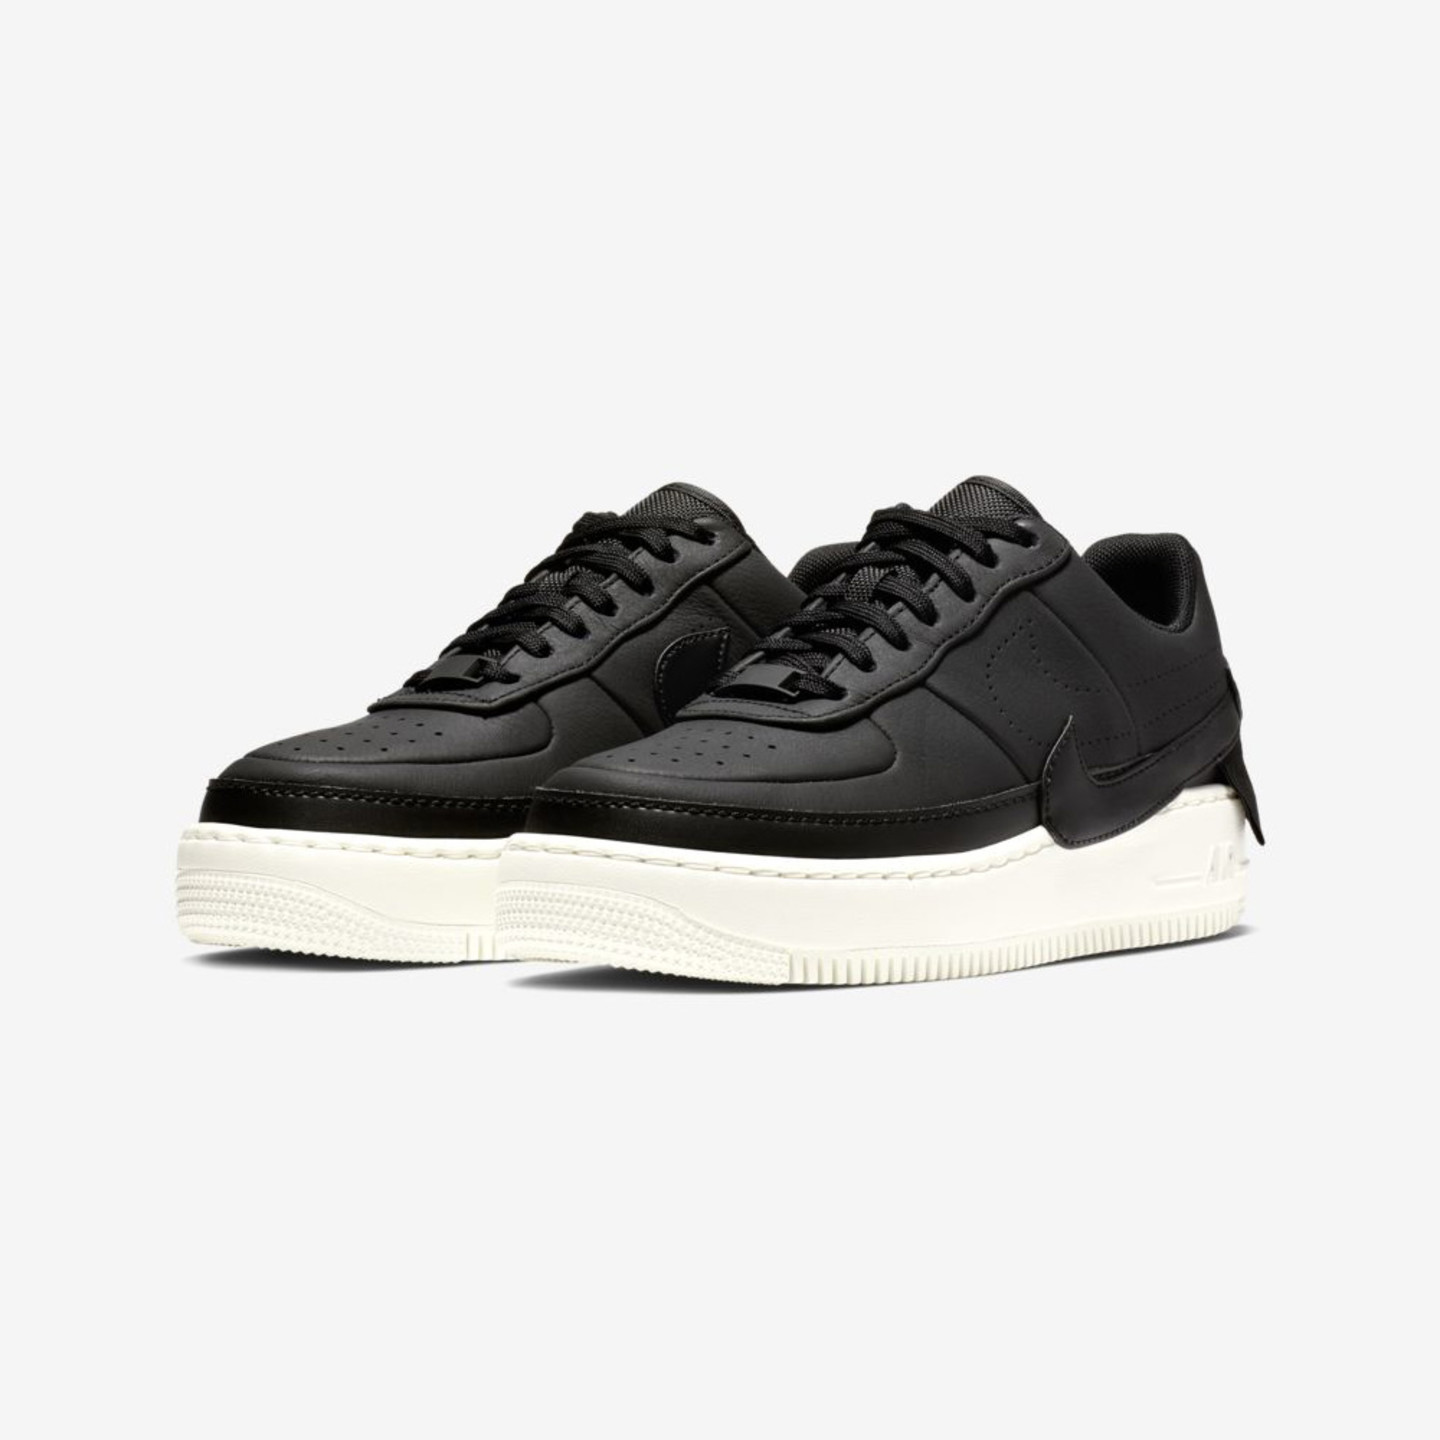 Nike Air Force 1 Jester XX Premium Black / Sail AV3515-001